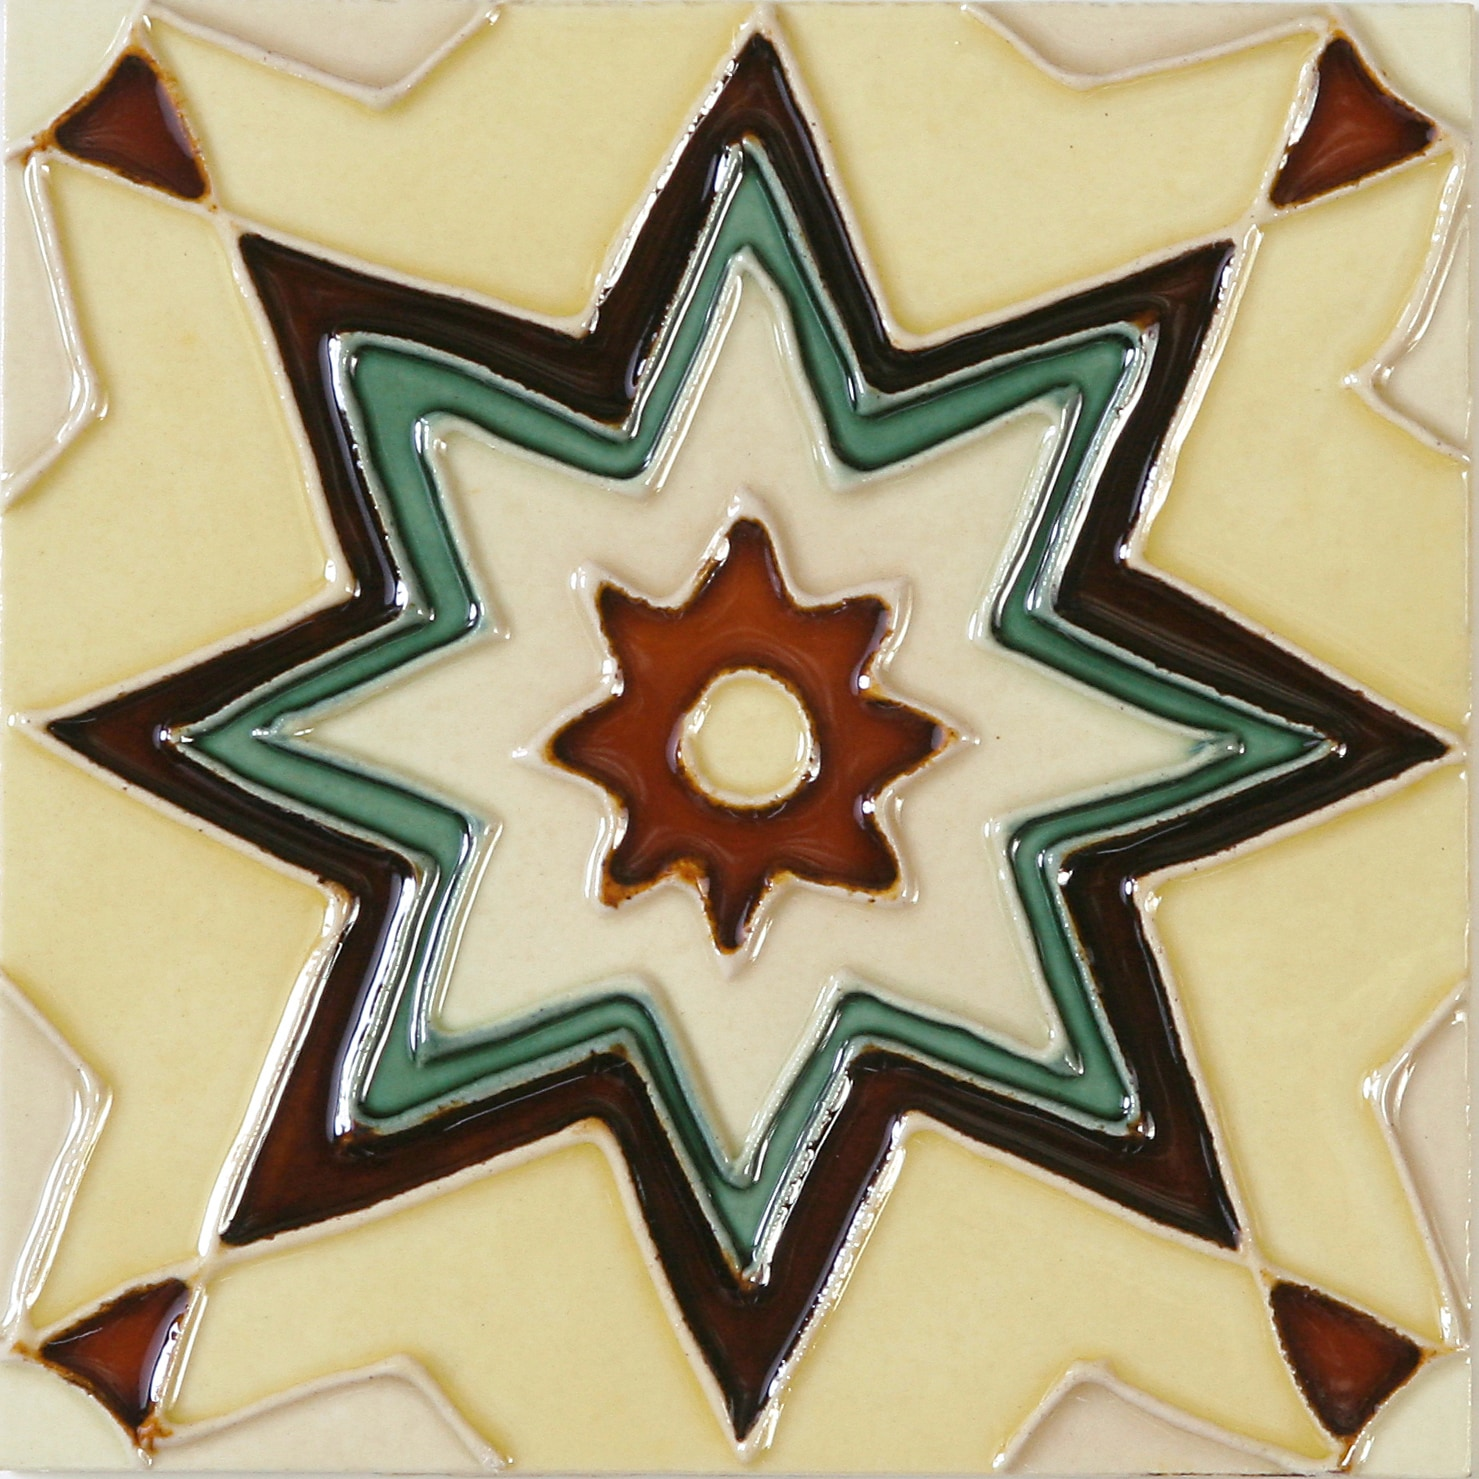 Hand-Painted Ceramic Glazed Wall Tile in Maresol Hand-Painted Ceramic Glazed Wall Tile in Maresol 0